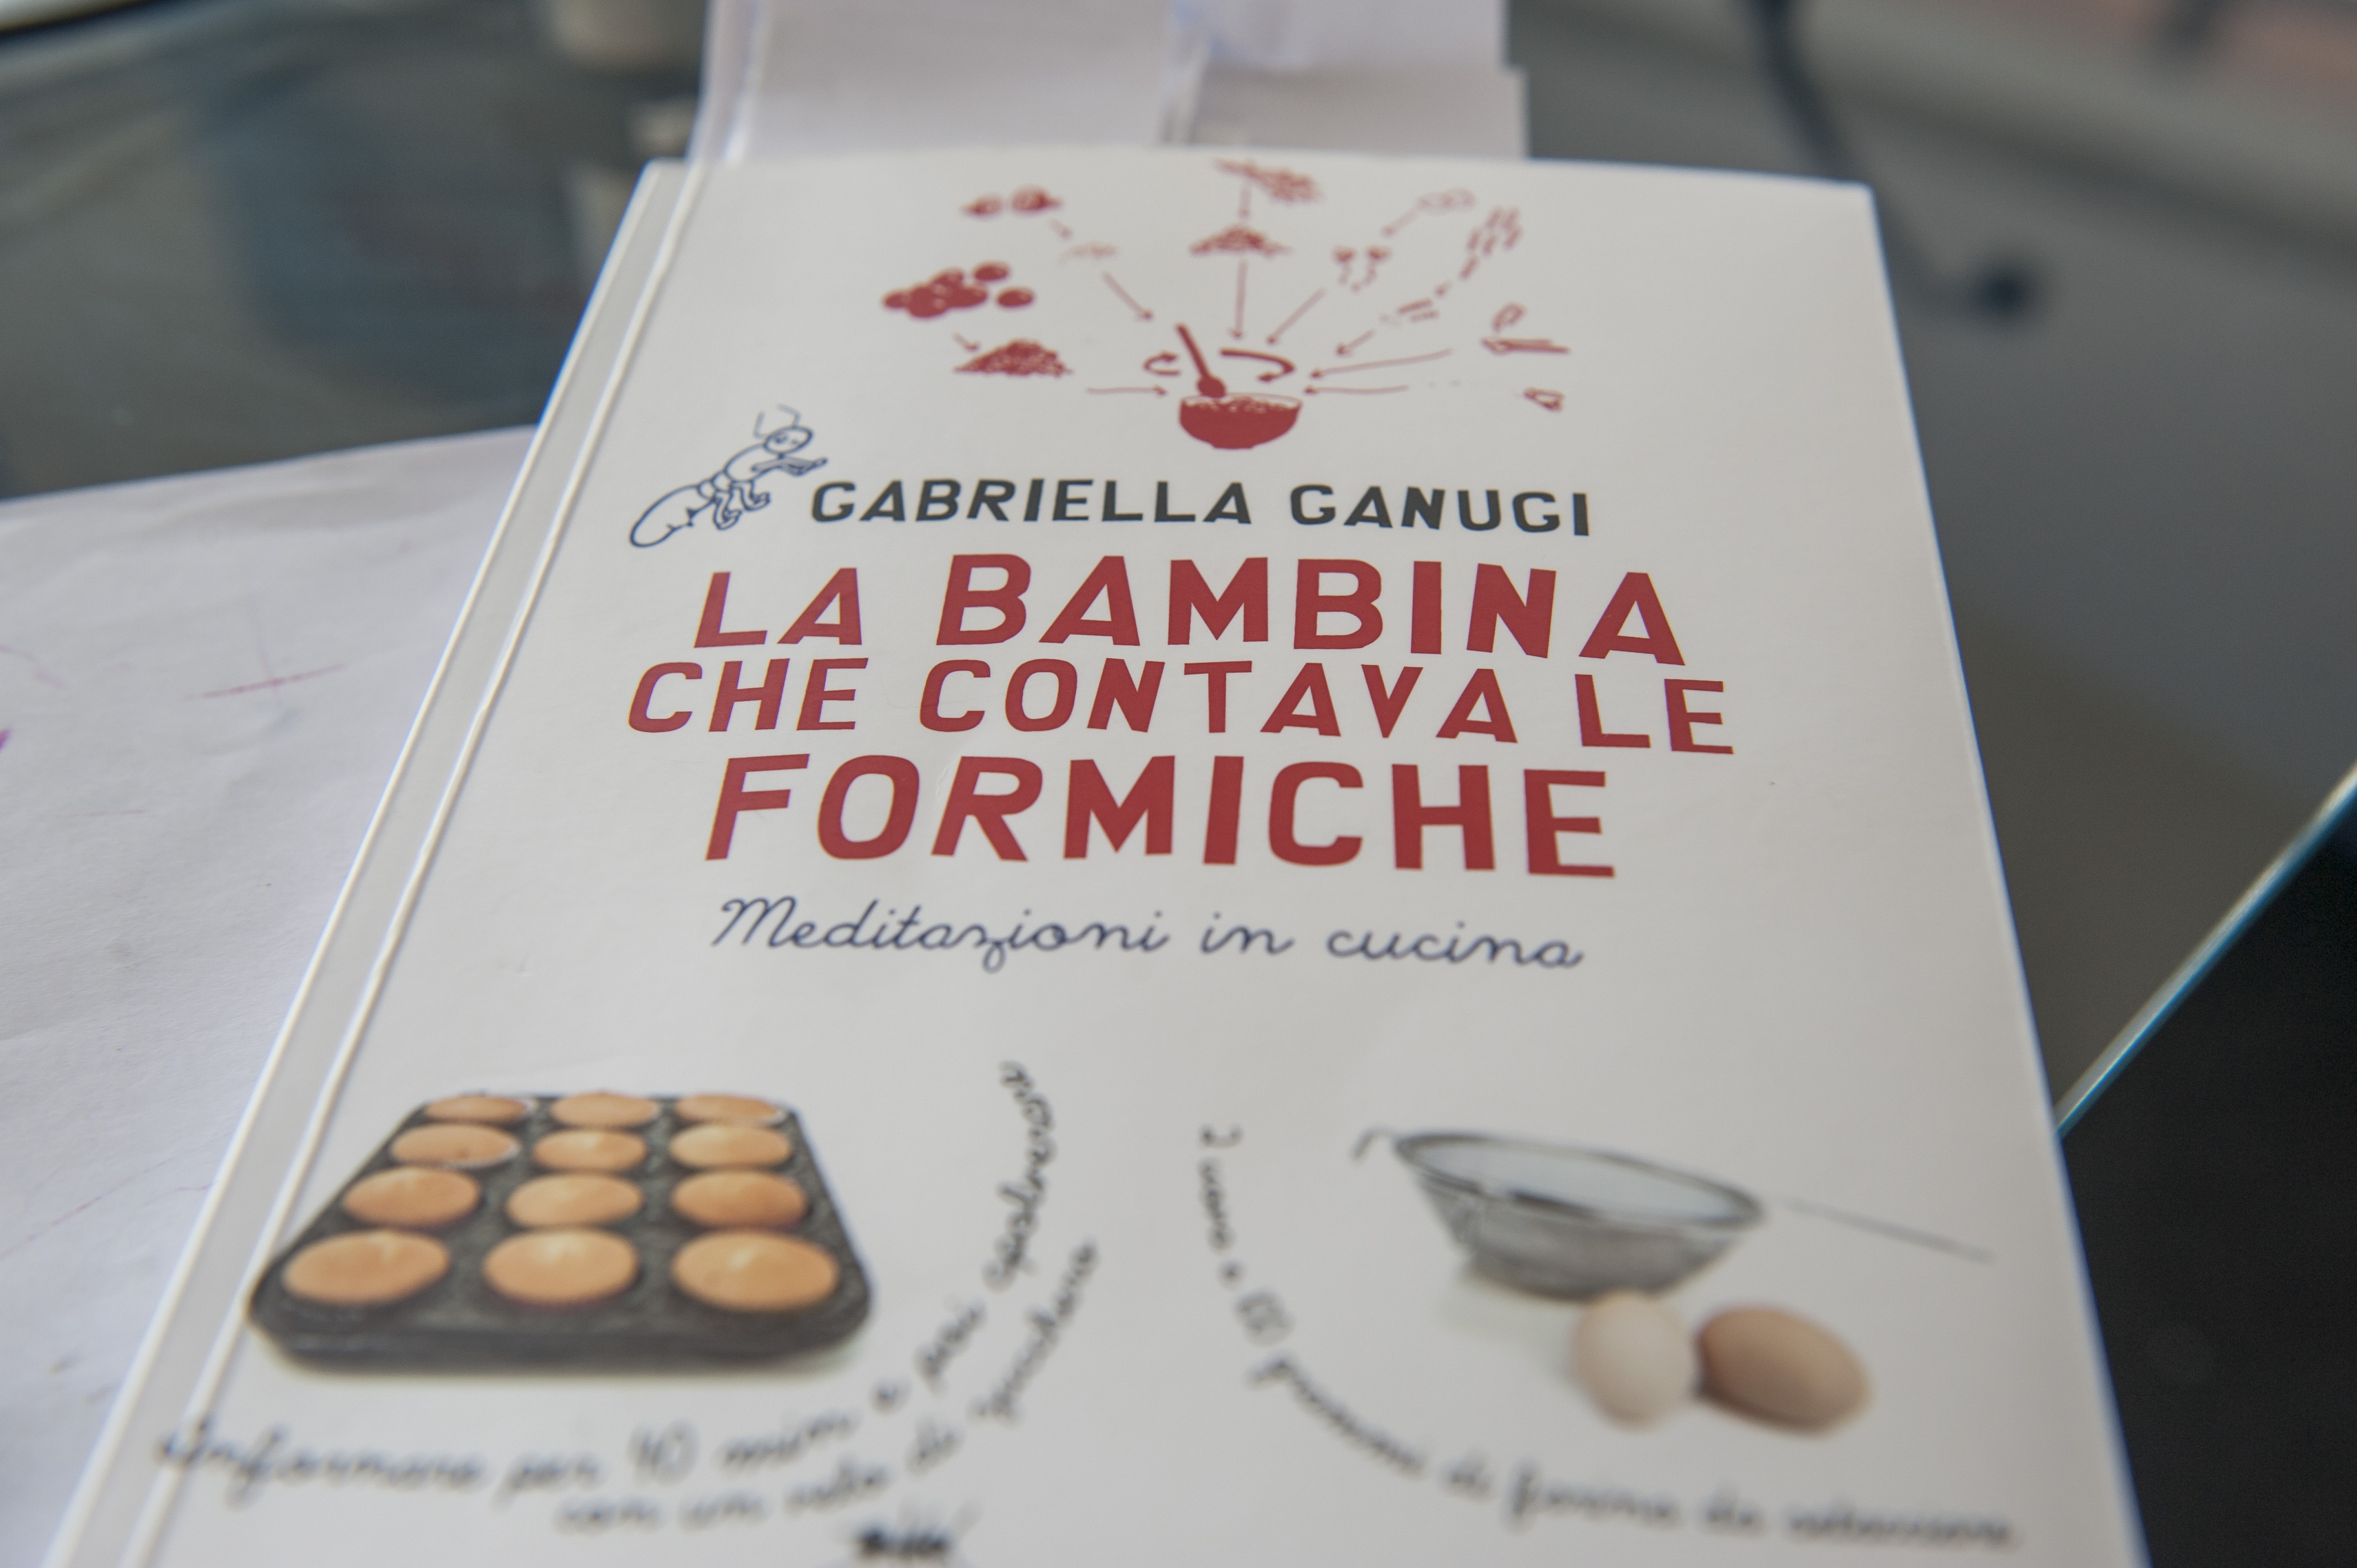 Literature lunch gabriella ganugi european economic and - Formiche in cucina ...